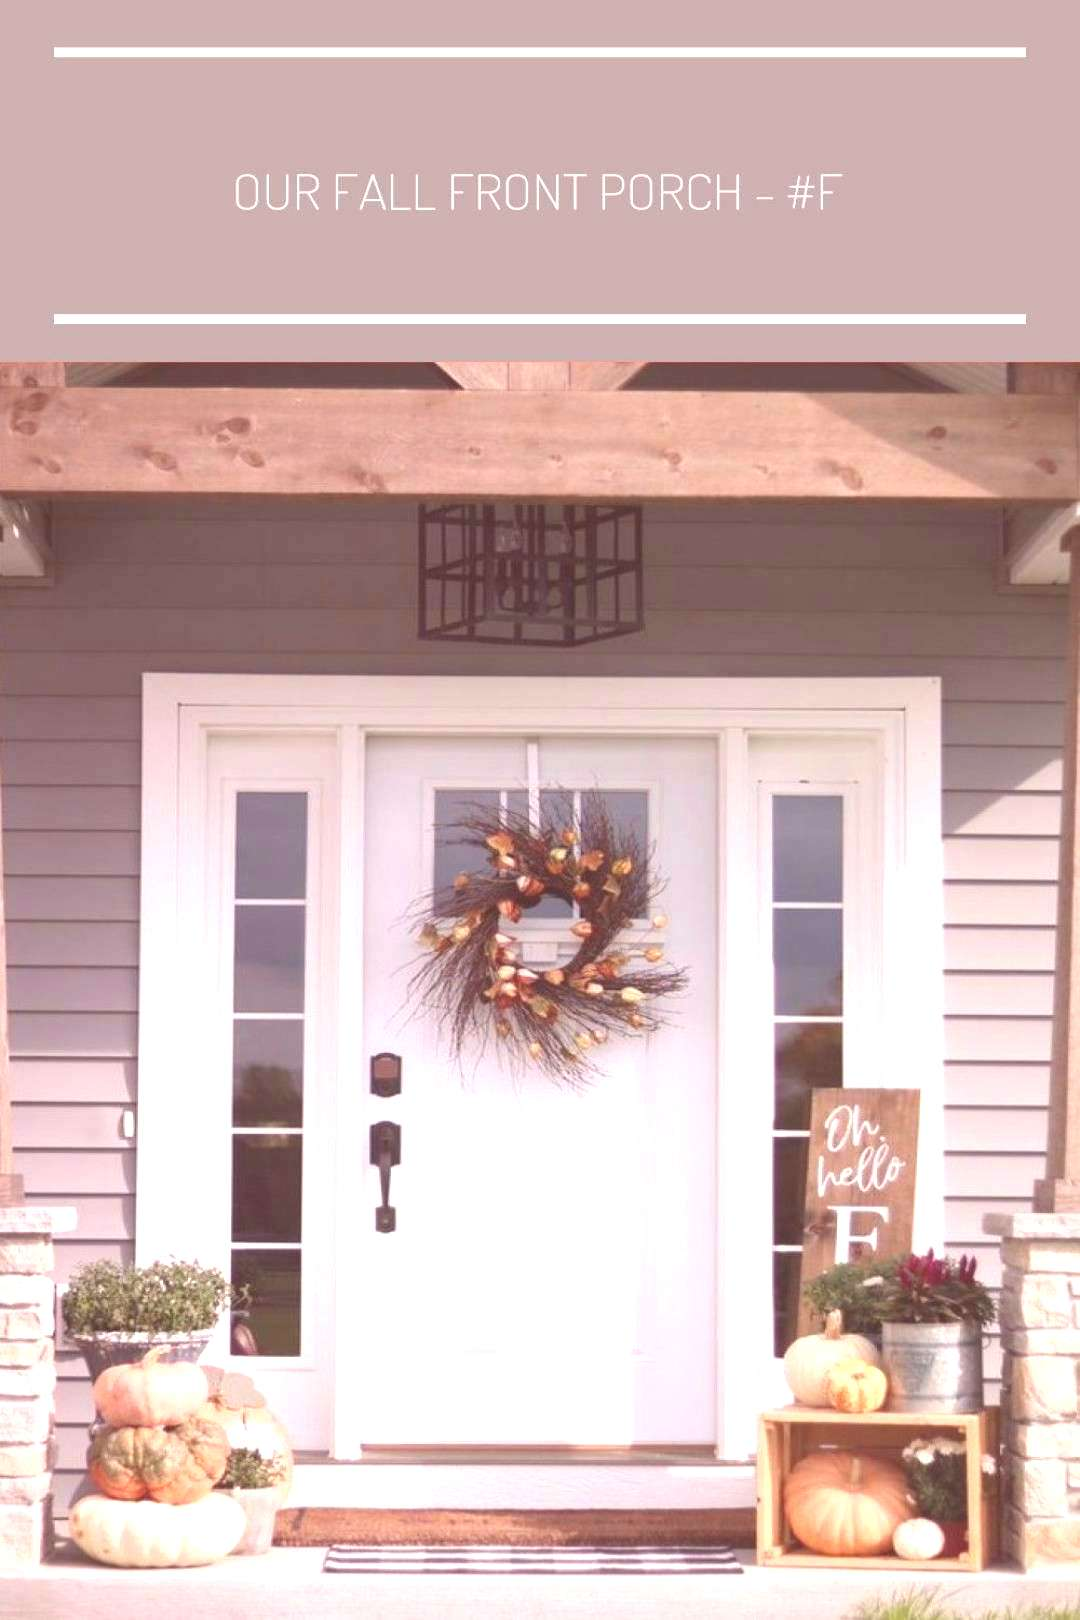 Our Fall Front Porch - Front Porch Decor Small farmhouse Front Porch Decor Small farmhouse...